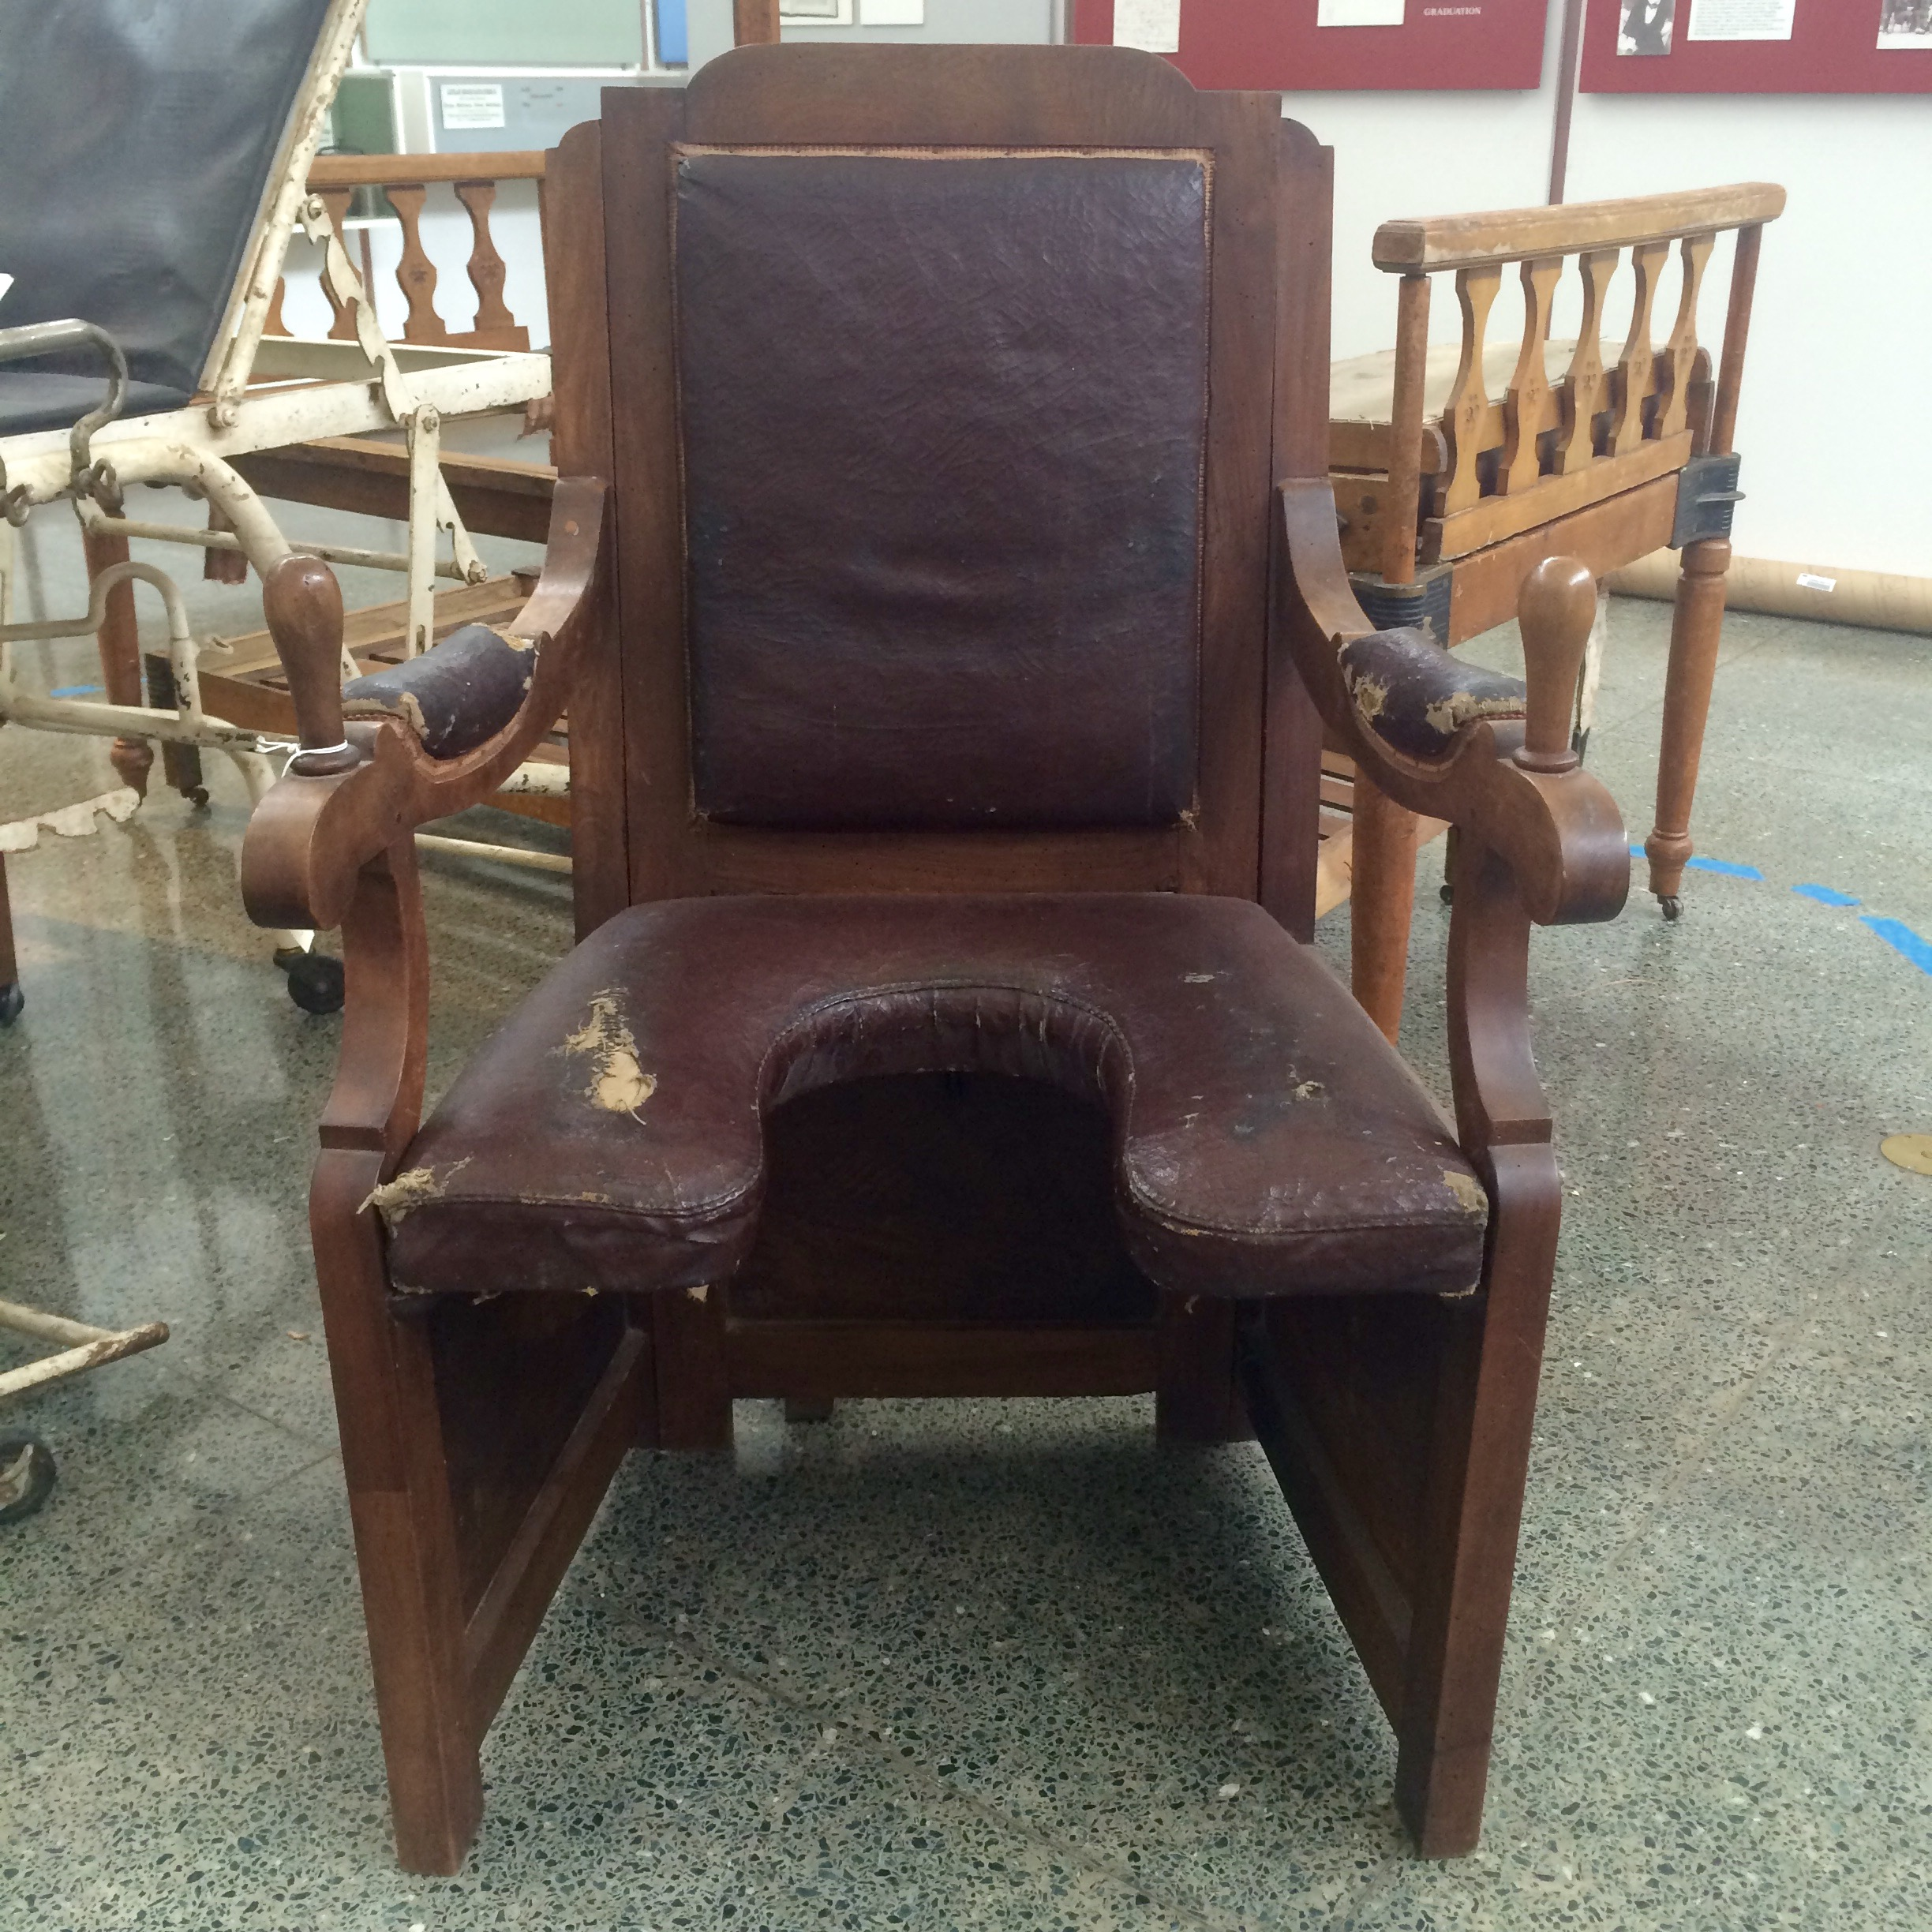 Rediscovering The Birthing Chair Delivering Life While Sitting Up